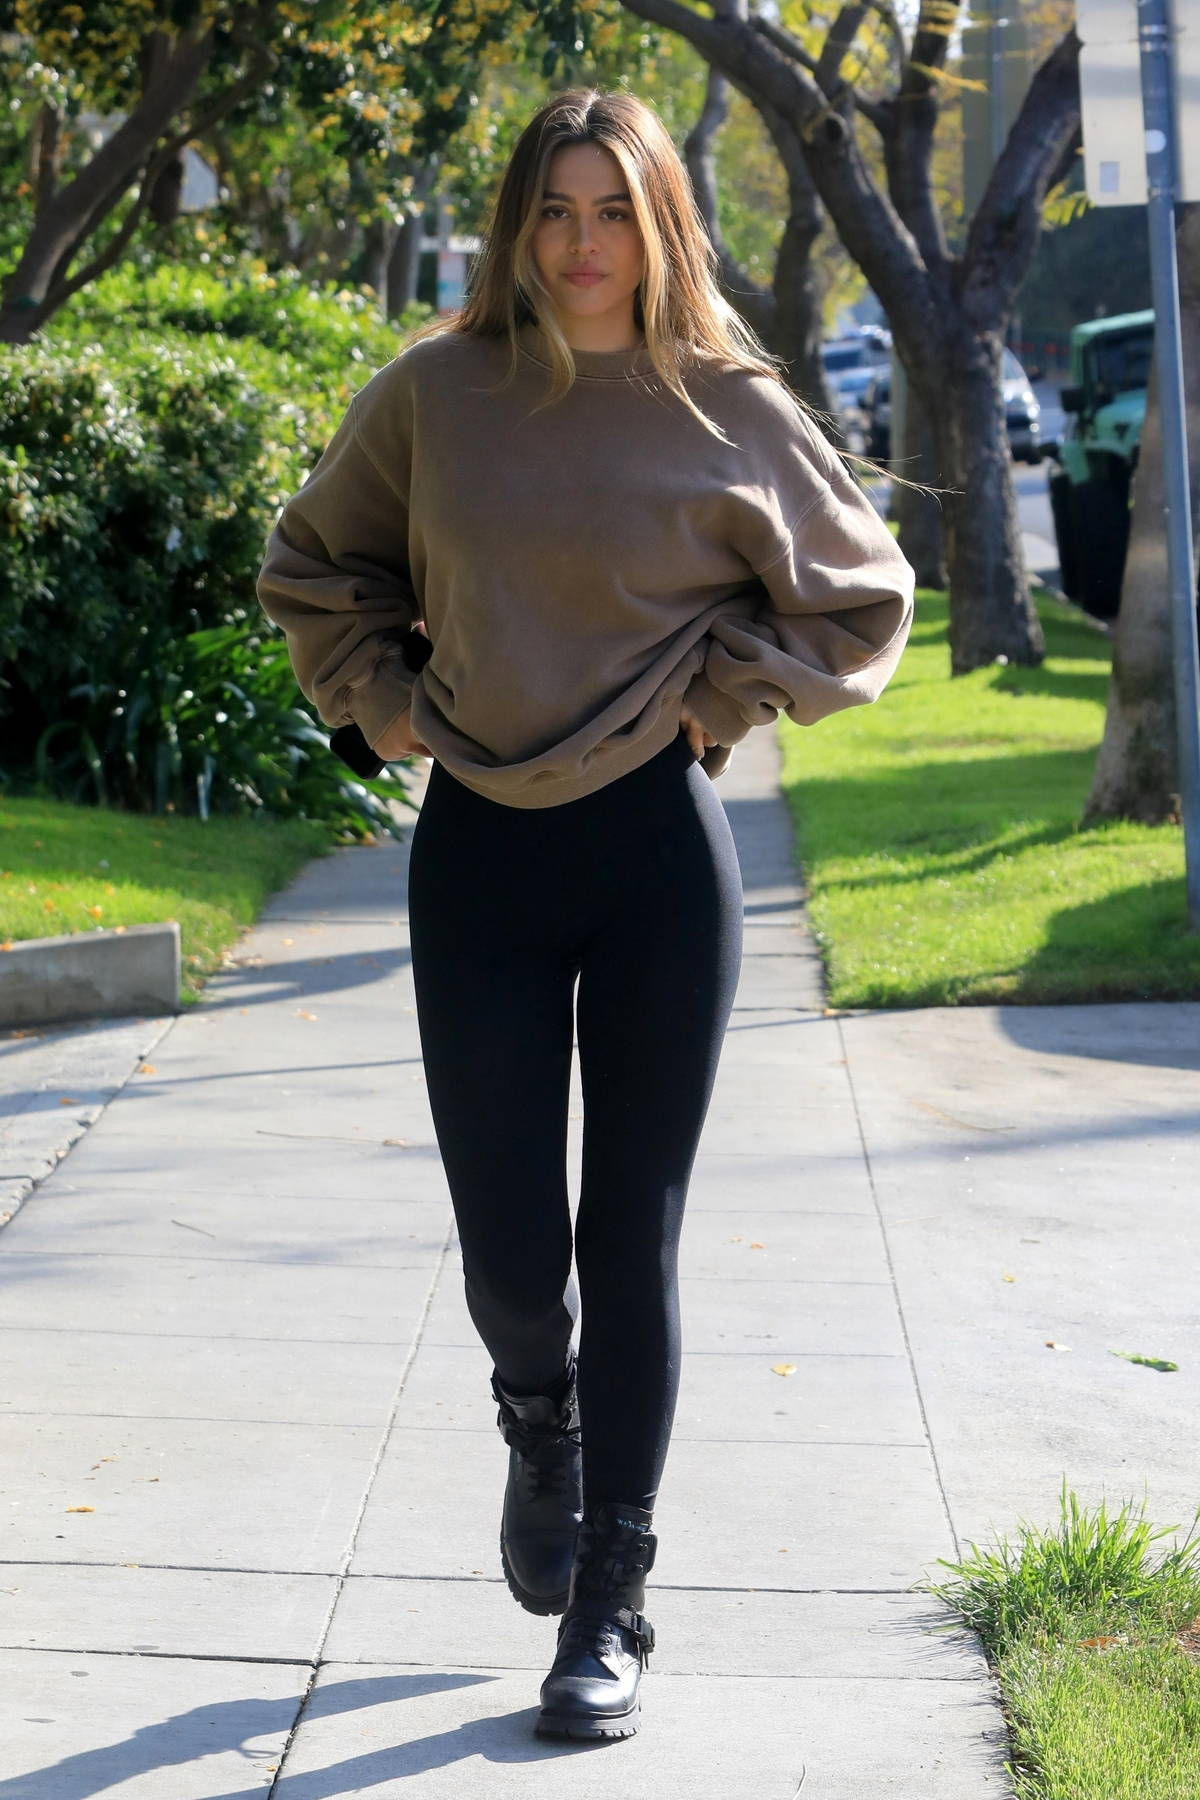 Amelia Hamlin throws a peace sign while out wearing a grey sweatshirt and black leggings in West Hollywood, California